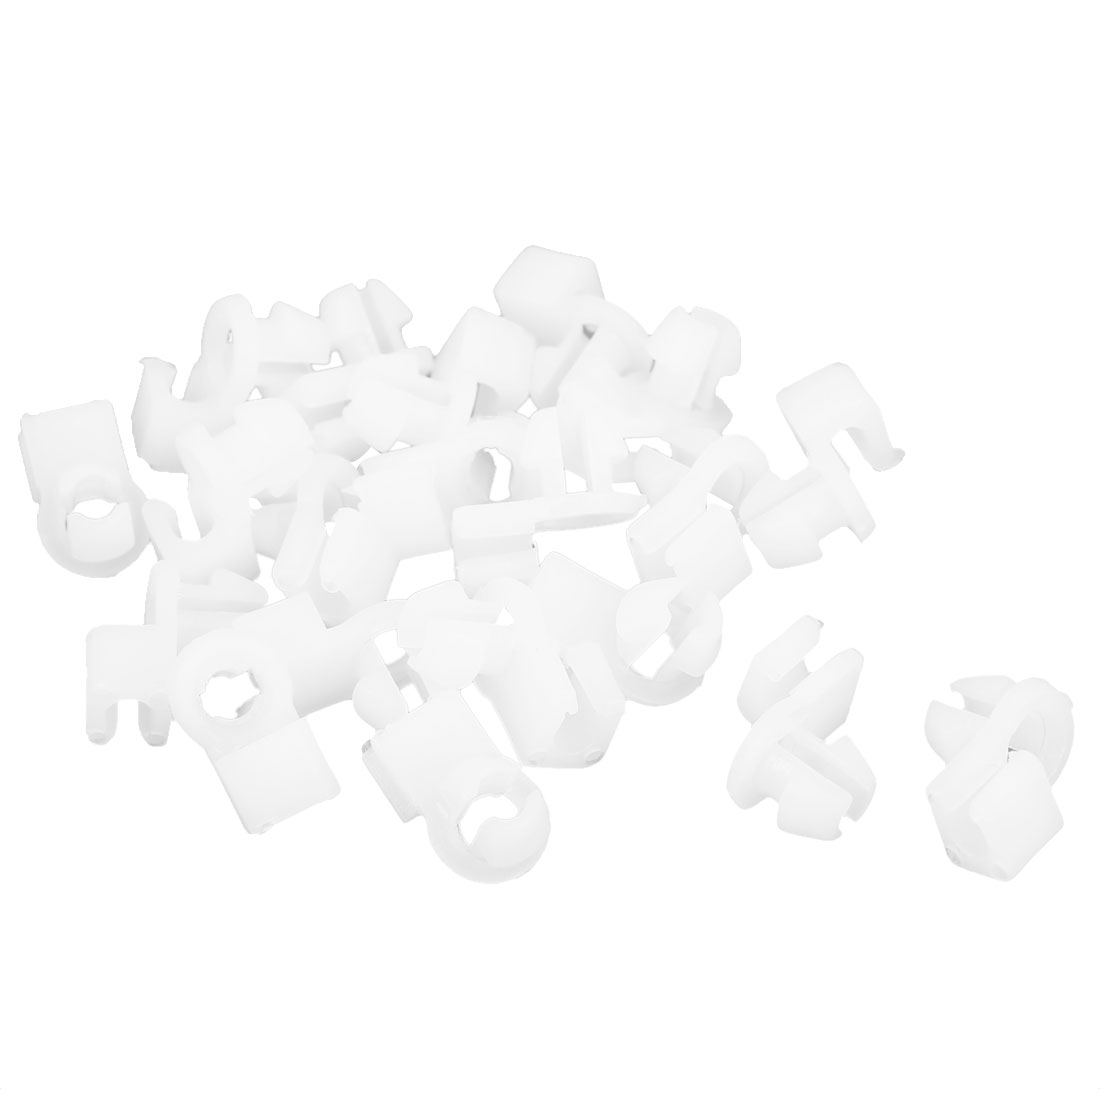 20 Pcs White Plastic Rivet Fastener Mud Flaps Bumper Fender Clips for 4mm Hole